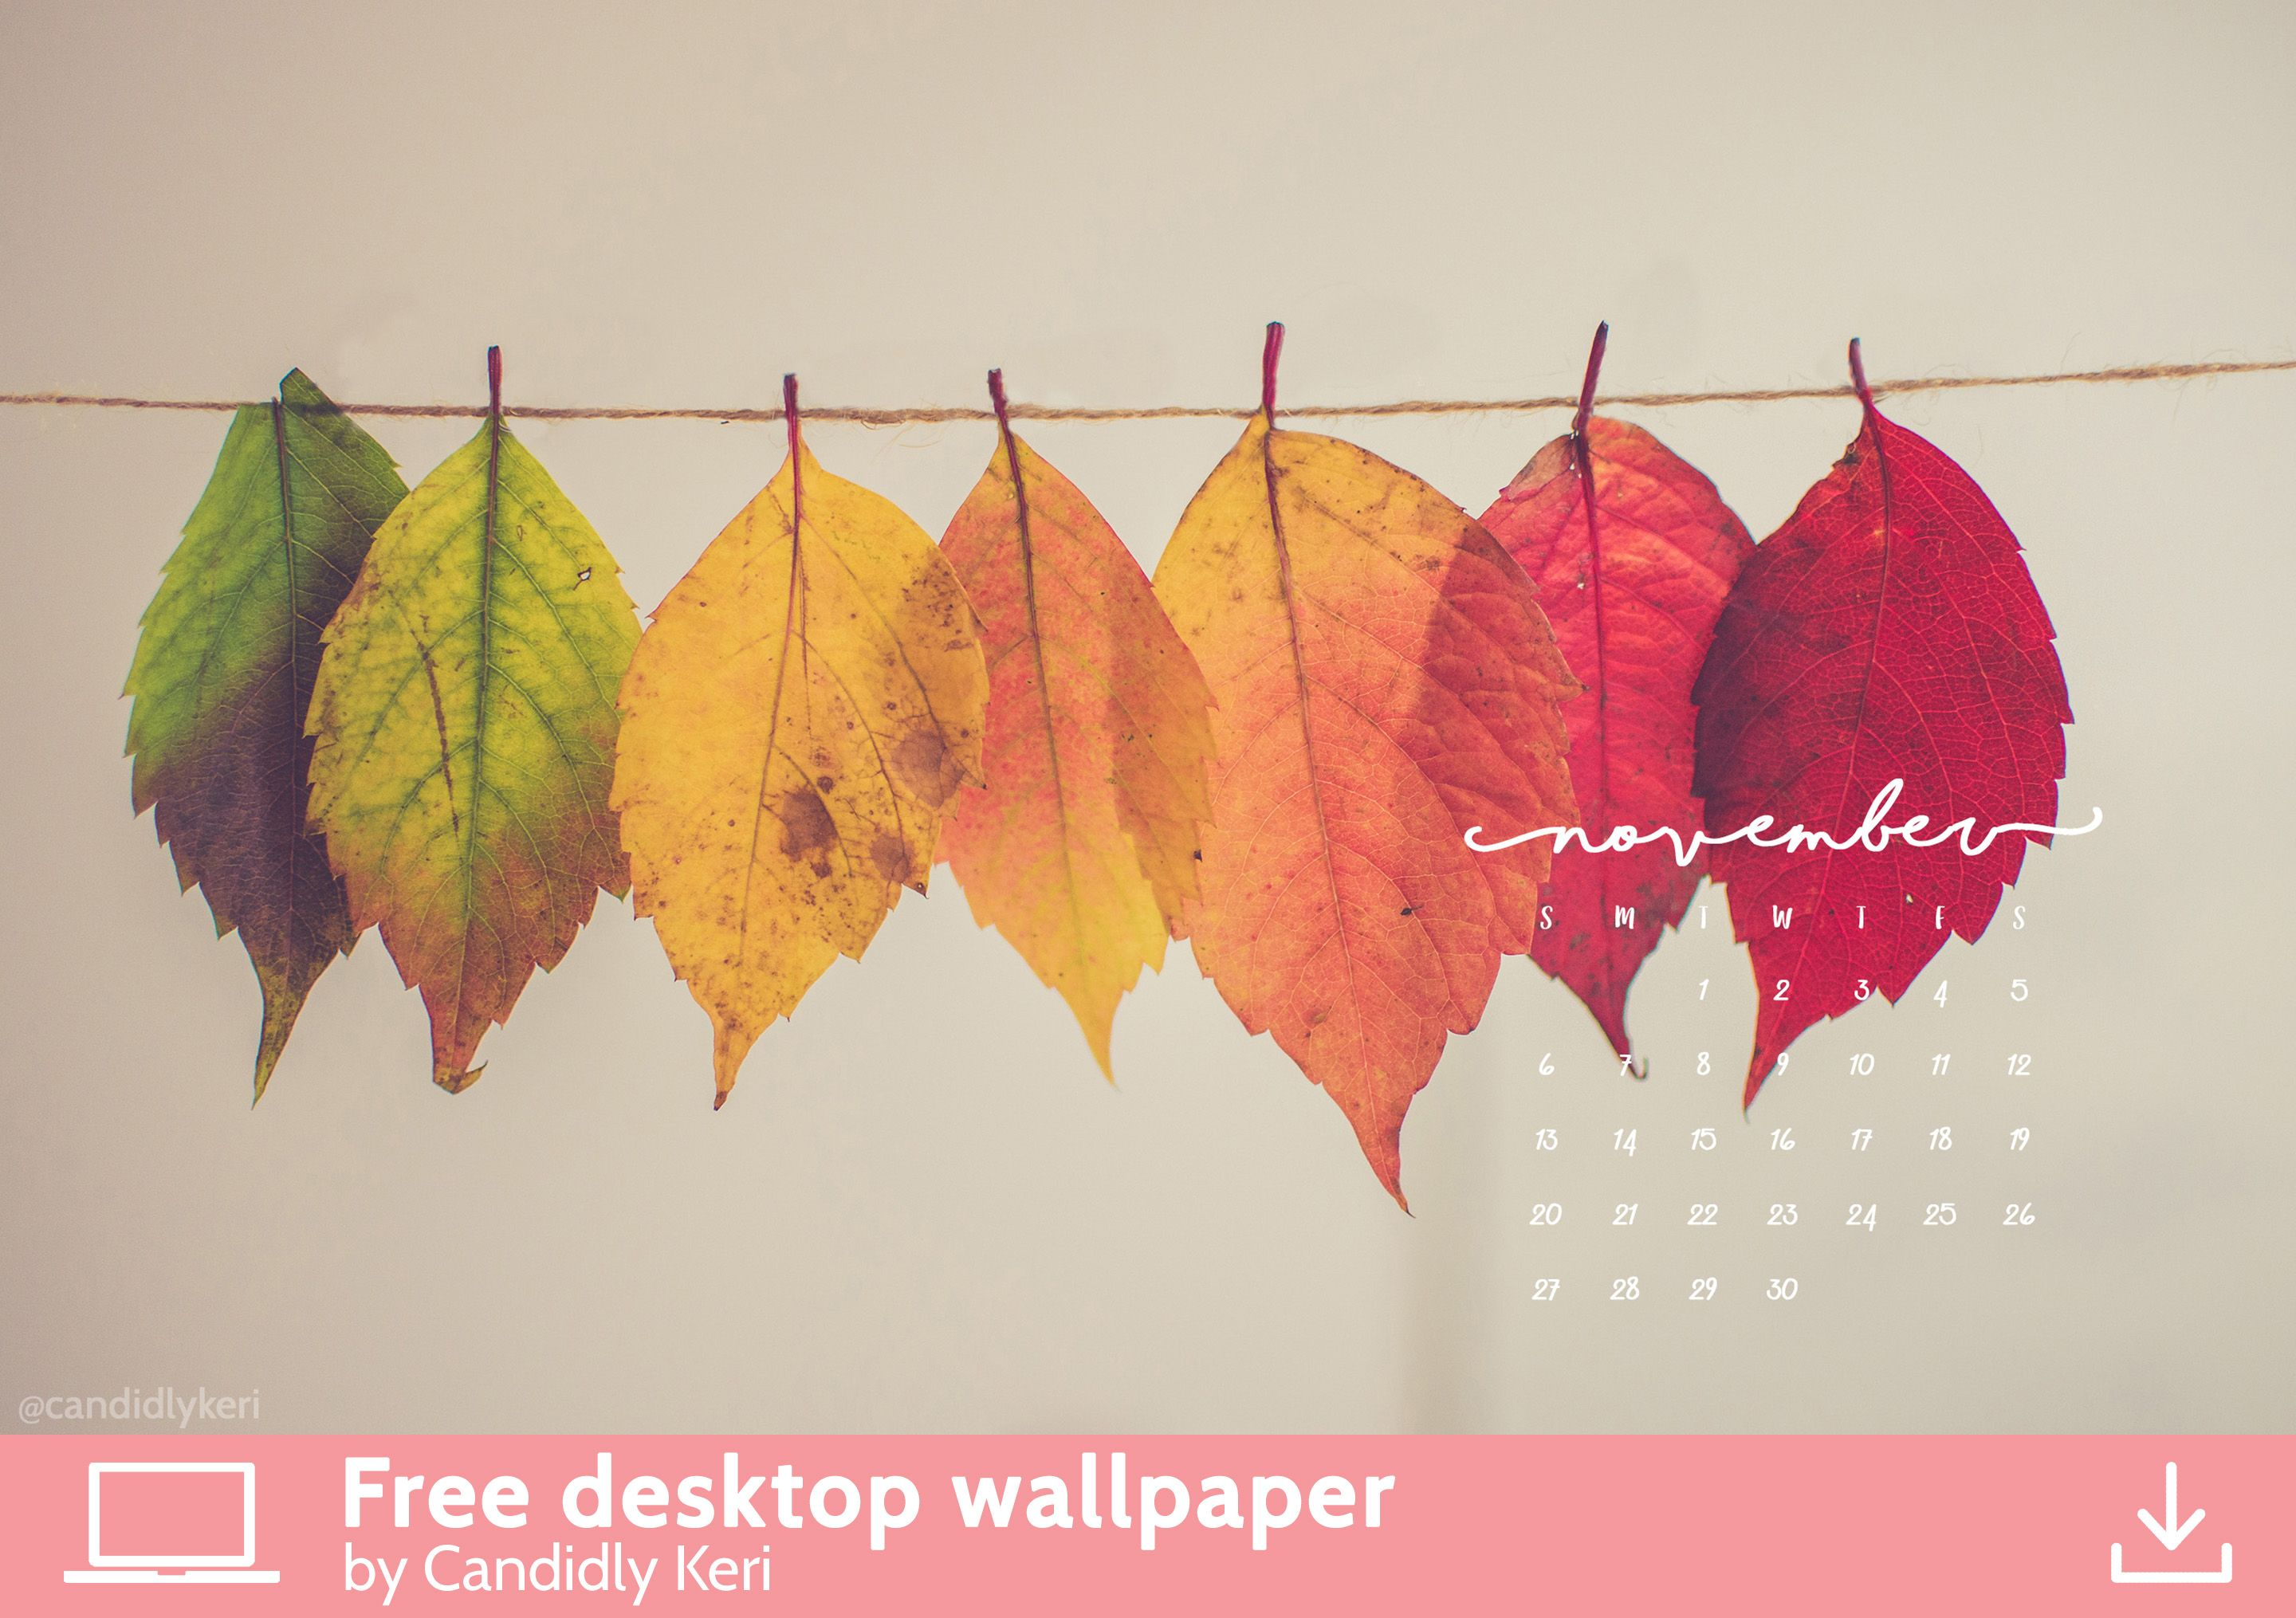 Pretty Leaf Photography Colorful Leaves Yellow Orange Red November Calendar 2016 Wallpaper You Can Download For Free On The Blog Any Device Mobile